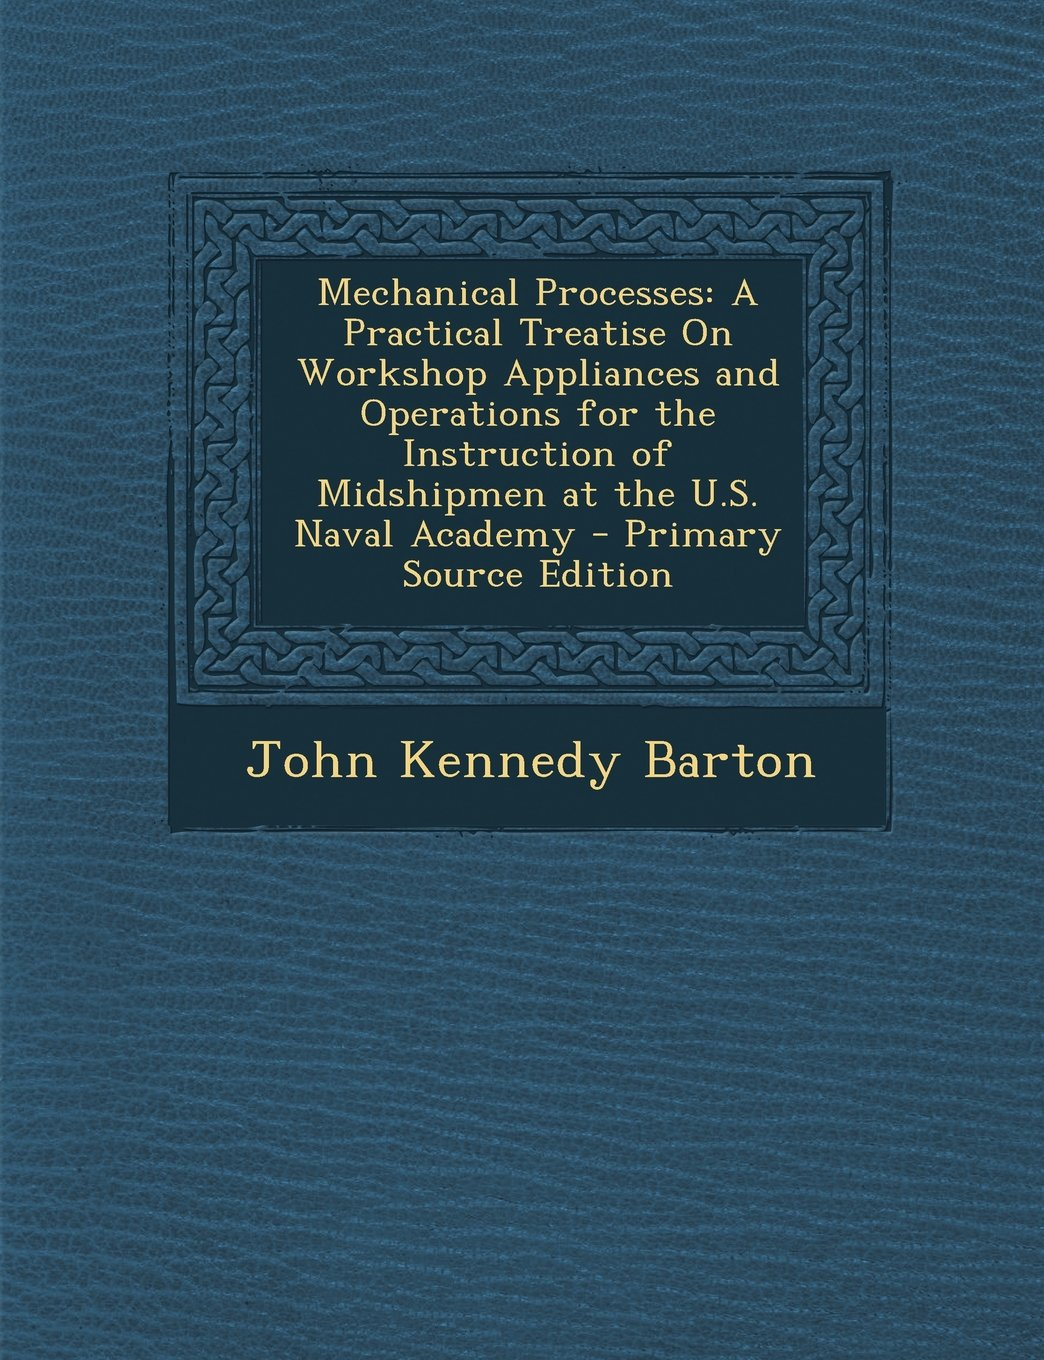 Mechanical Processes: A Practical Treatise On Workshop Appliances and Operations for the Instruction of Midshipmen at the U.S. Naval Academy pdf